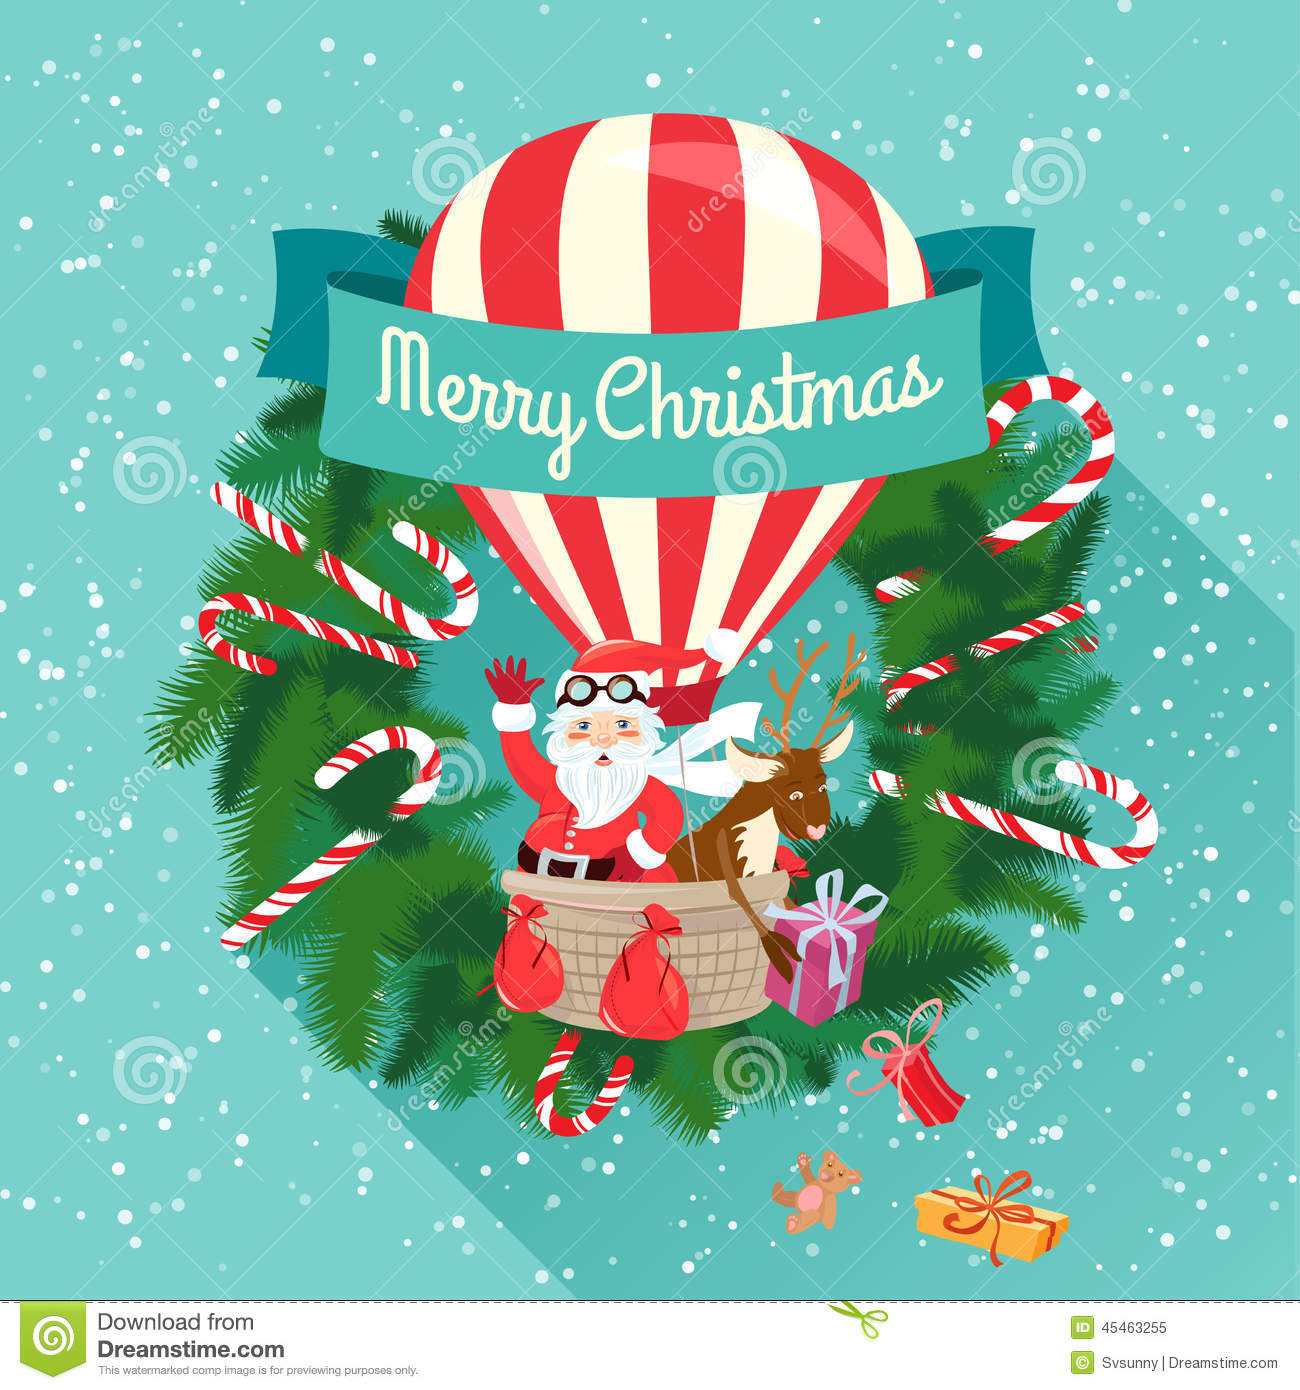 Festive Merry Christmas Greeting Card With Santa Claus And